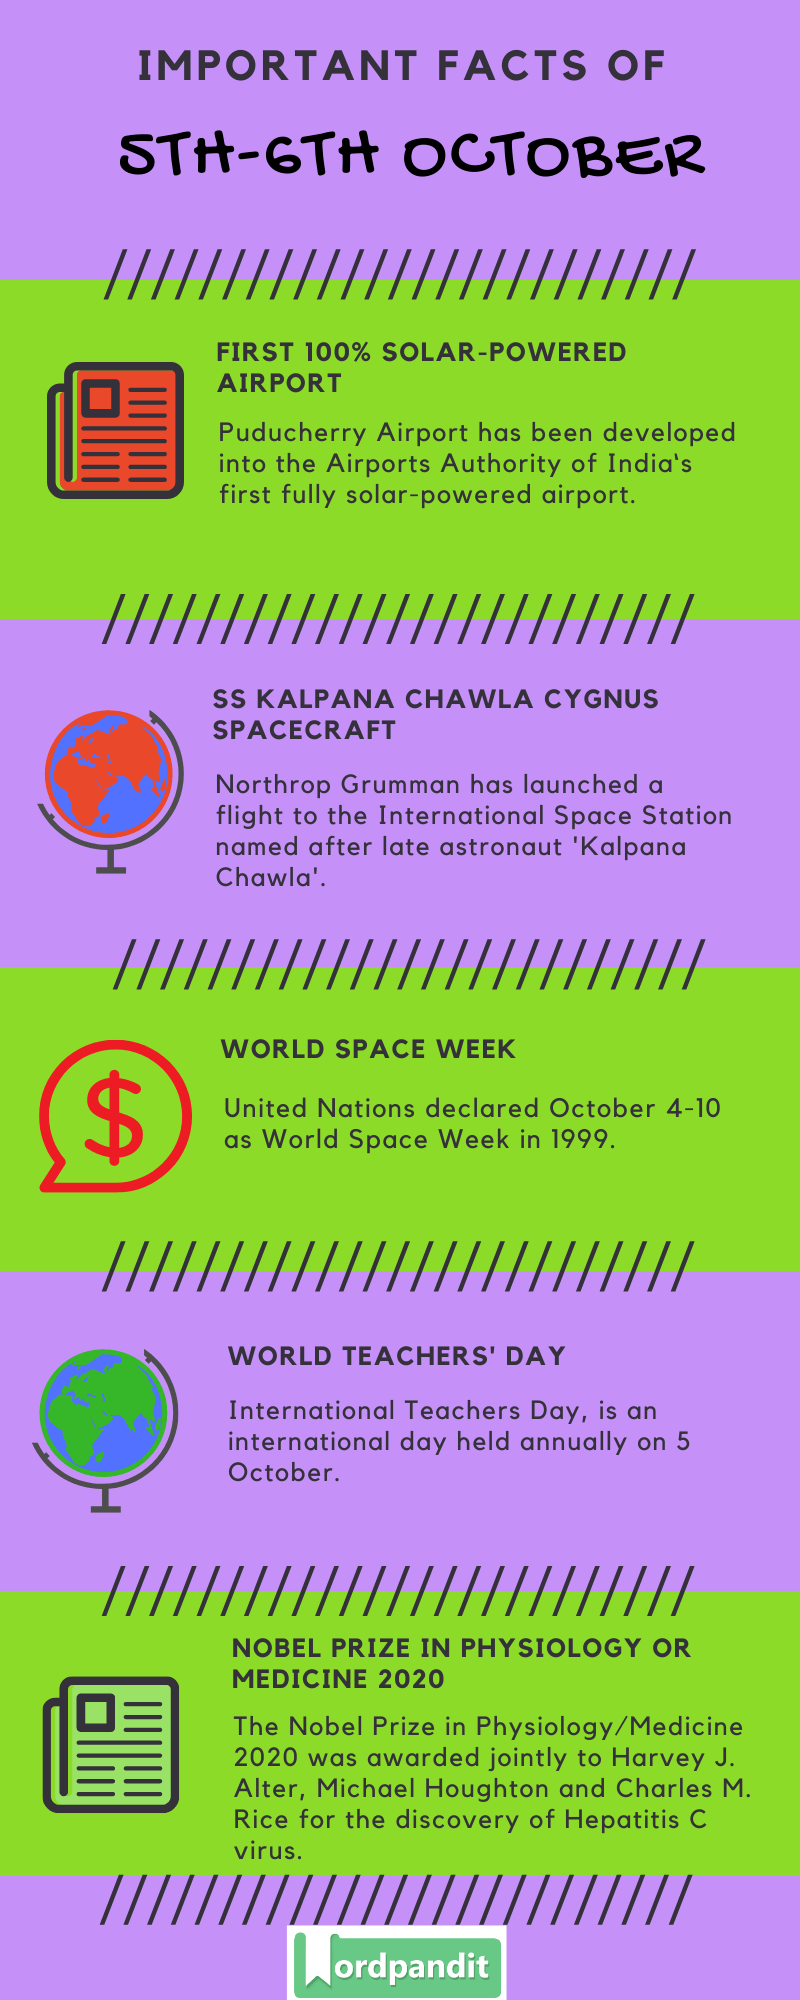 Daily Current Affairs 5th-6th October 2020 Current Affairs Quiz 5th-6th October 2020 Current Affairs Infographic